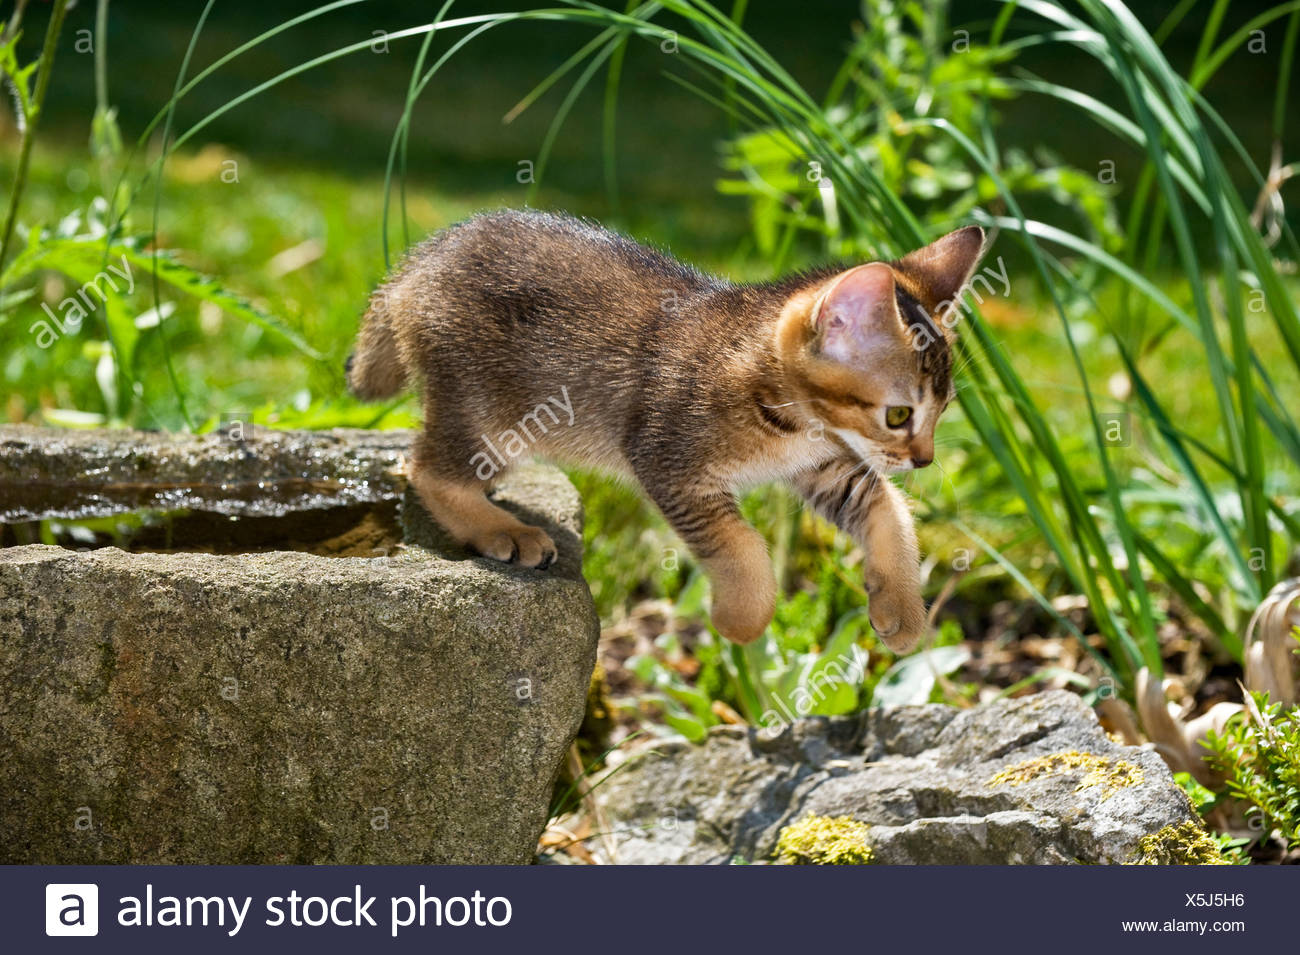 Abyssinian Cat Jumping